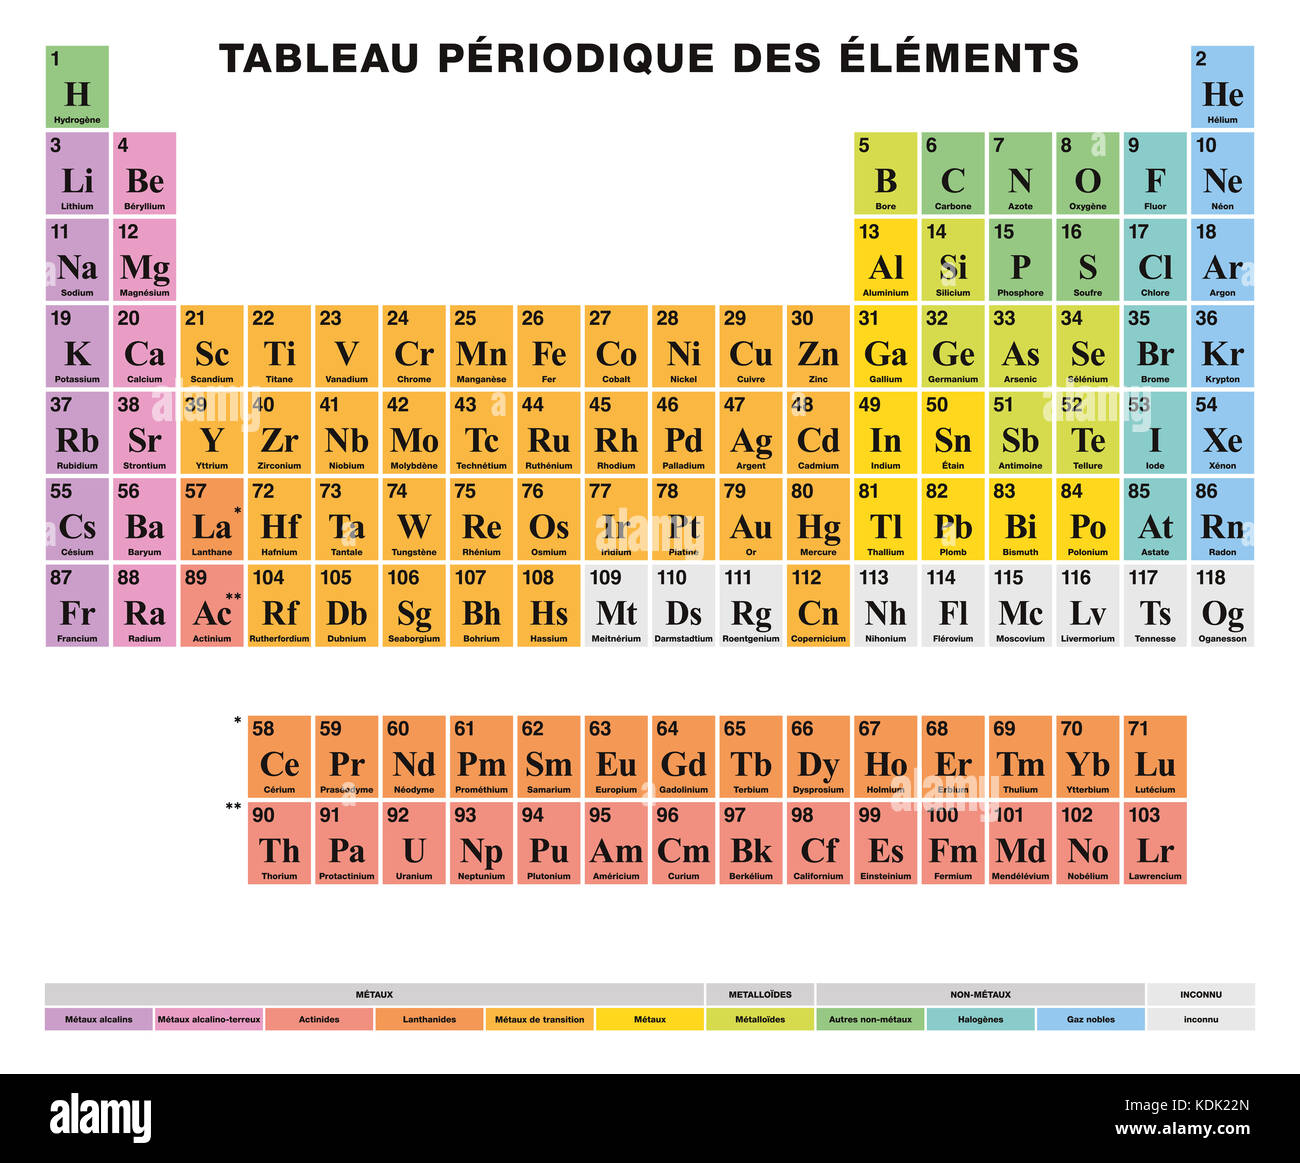 Periodic table of the elements french labeling tabular periodic table of the elements french labeling tabular arrangement of 118 chemical elements urtaz Images